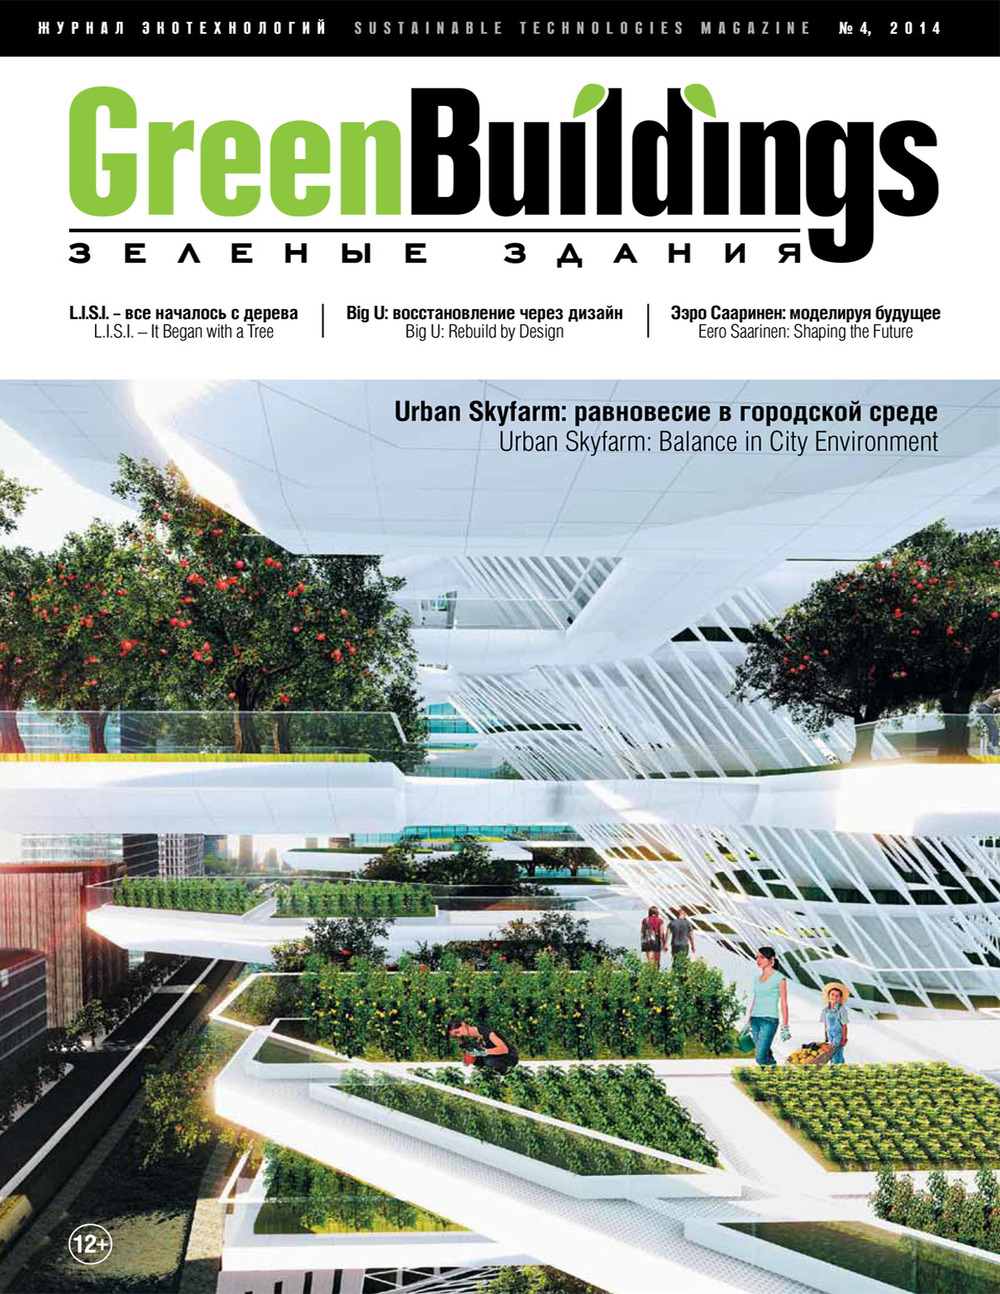 Green Buildings.jpg